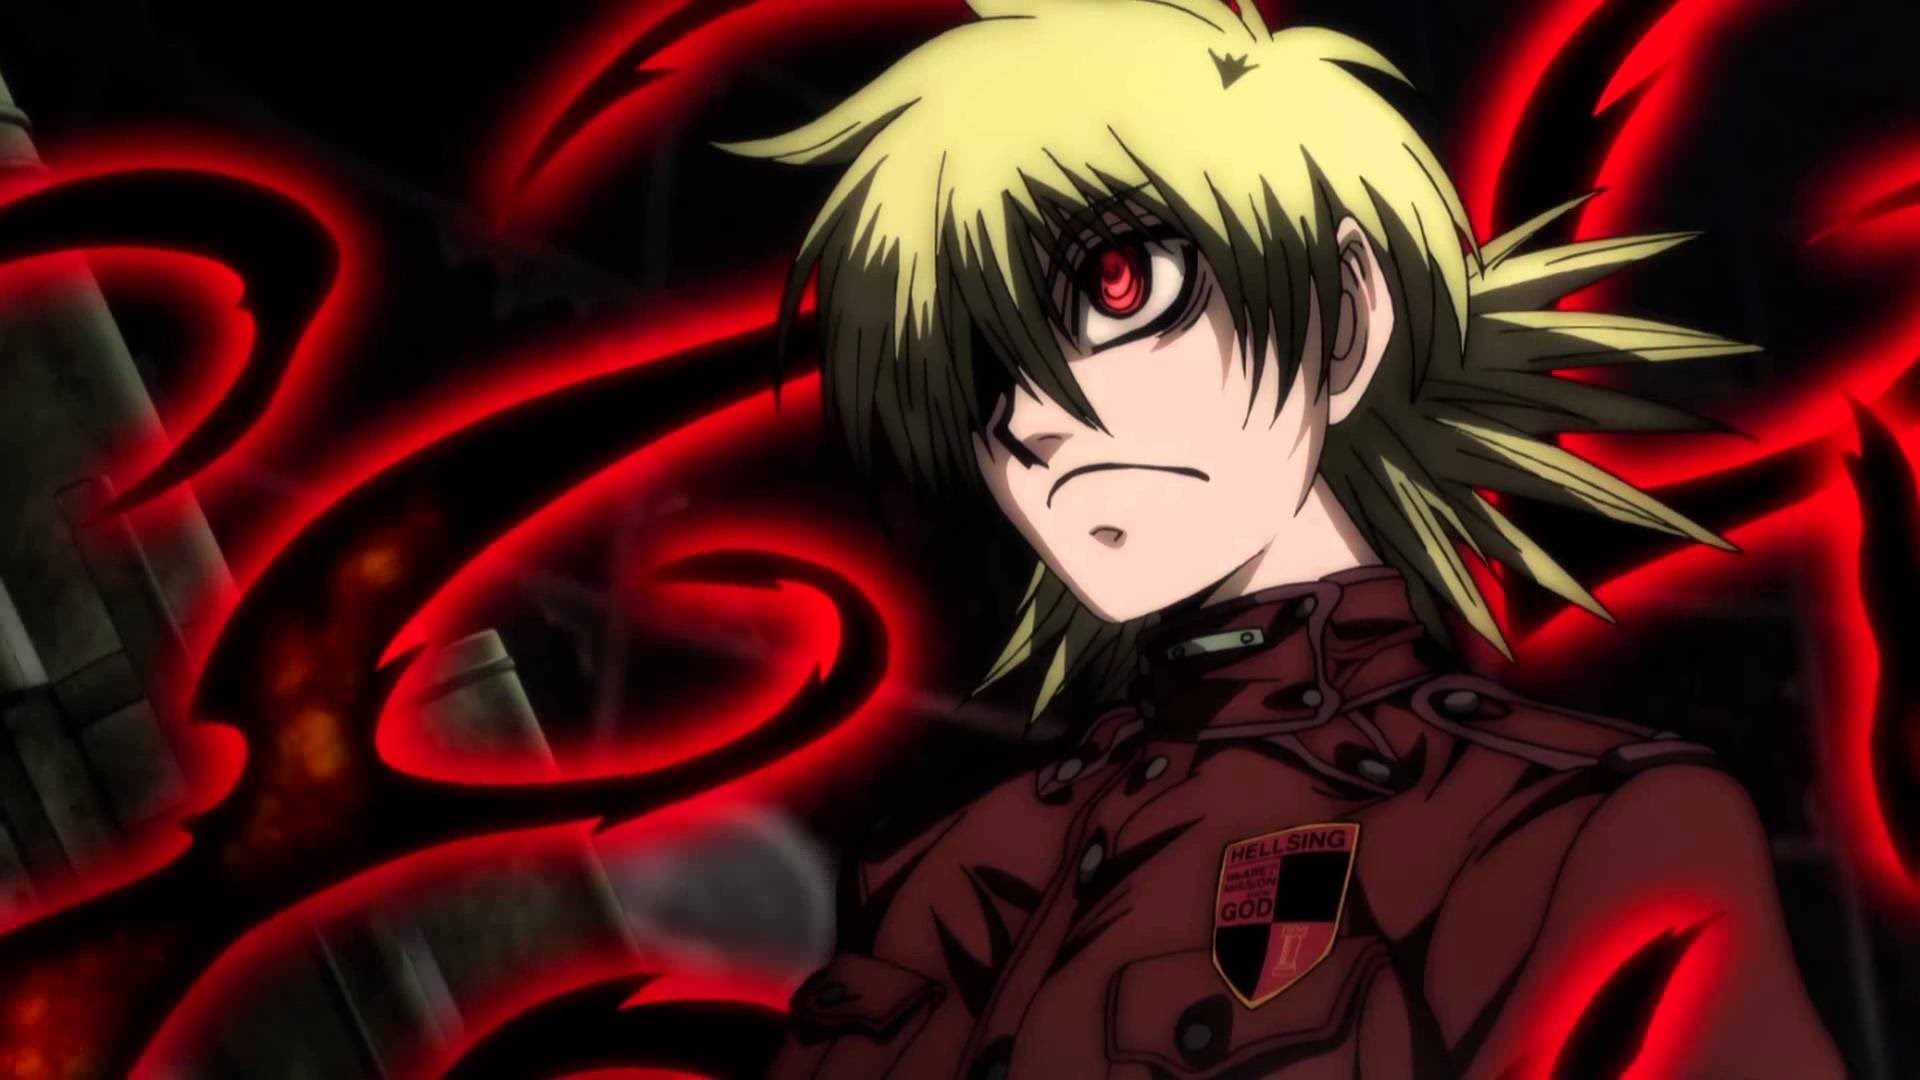 Res: 1920x1080, Hellsing Ultimate Seras Tribute AMV Where Did The Angels Go